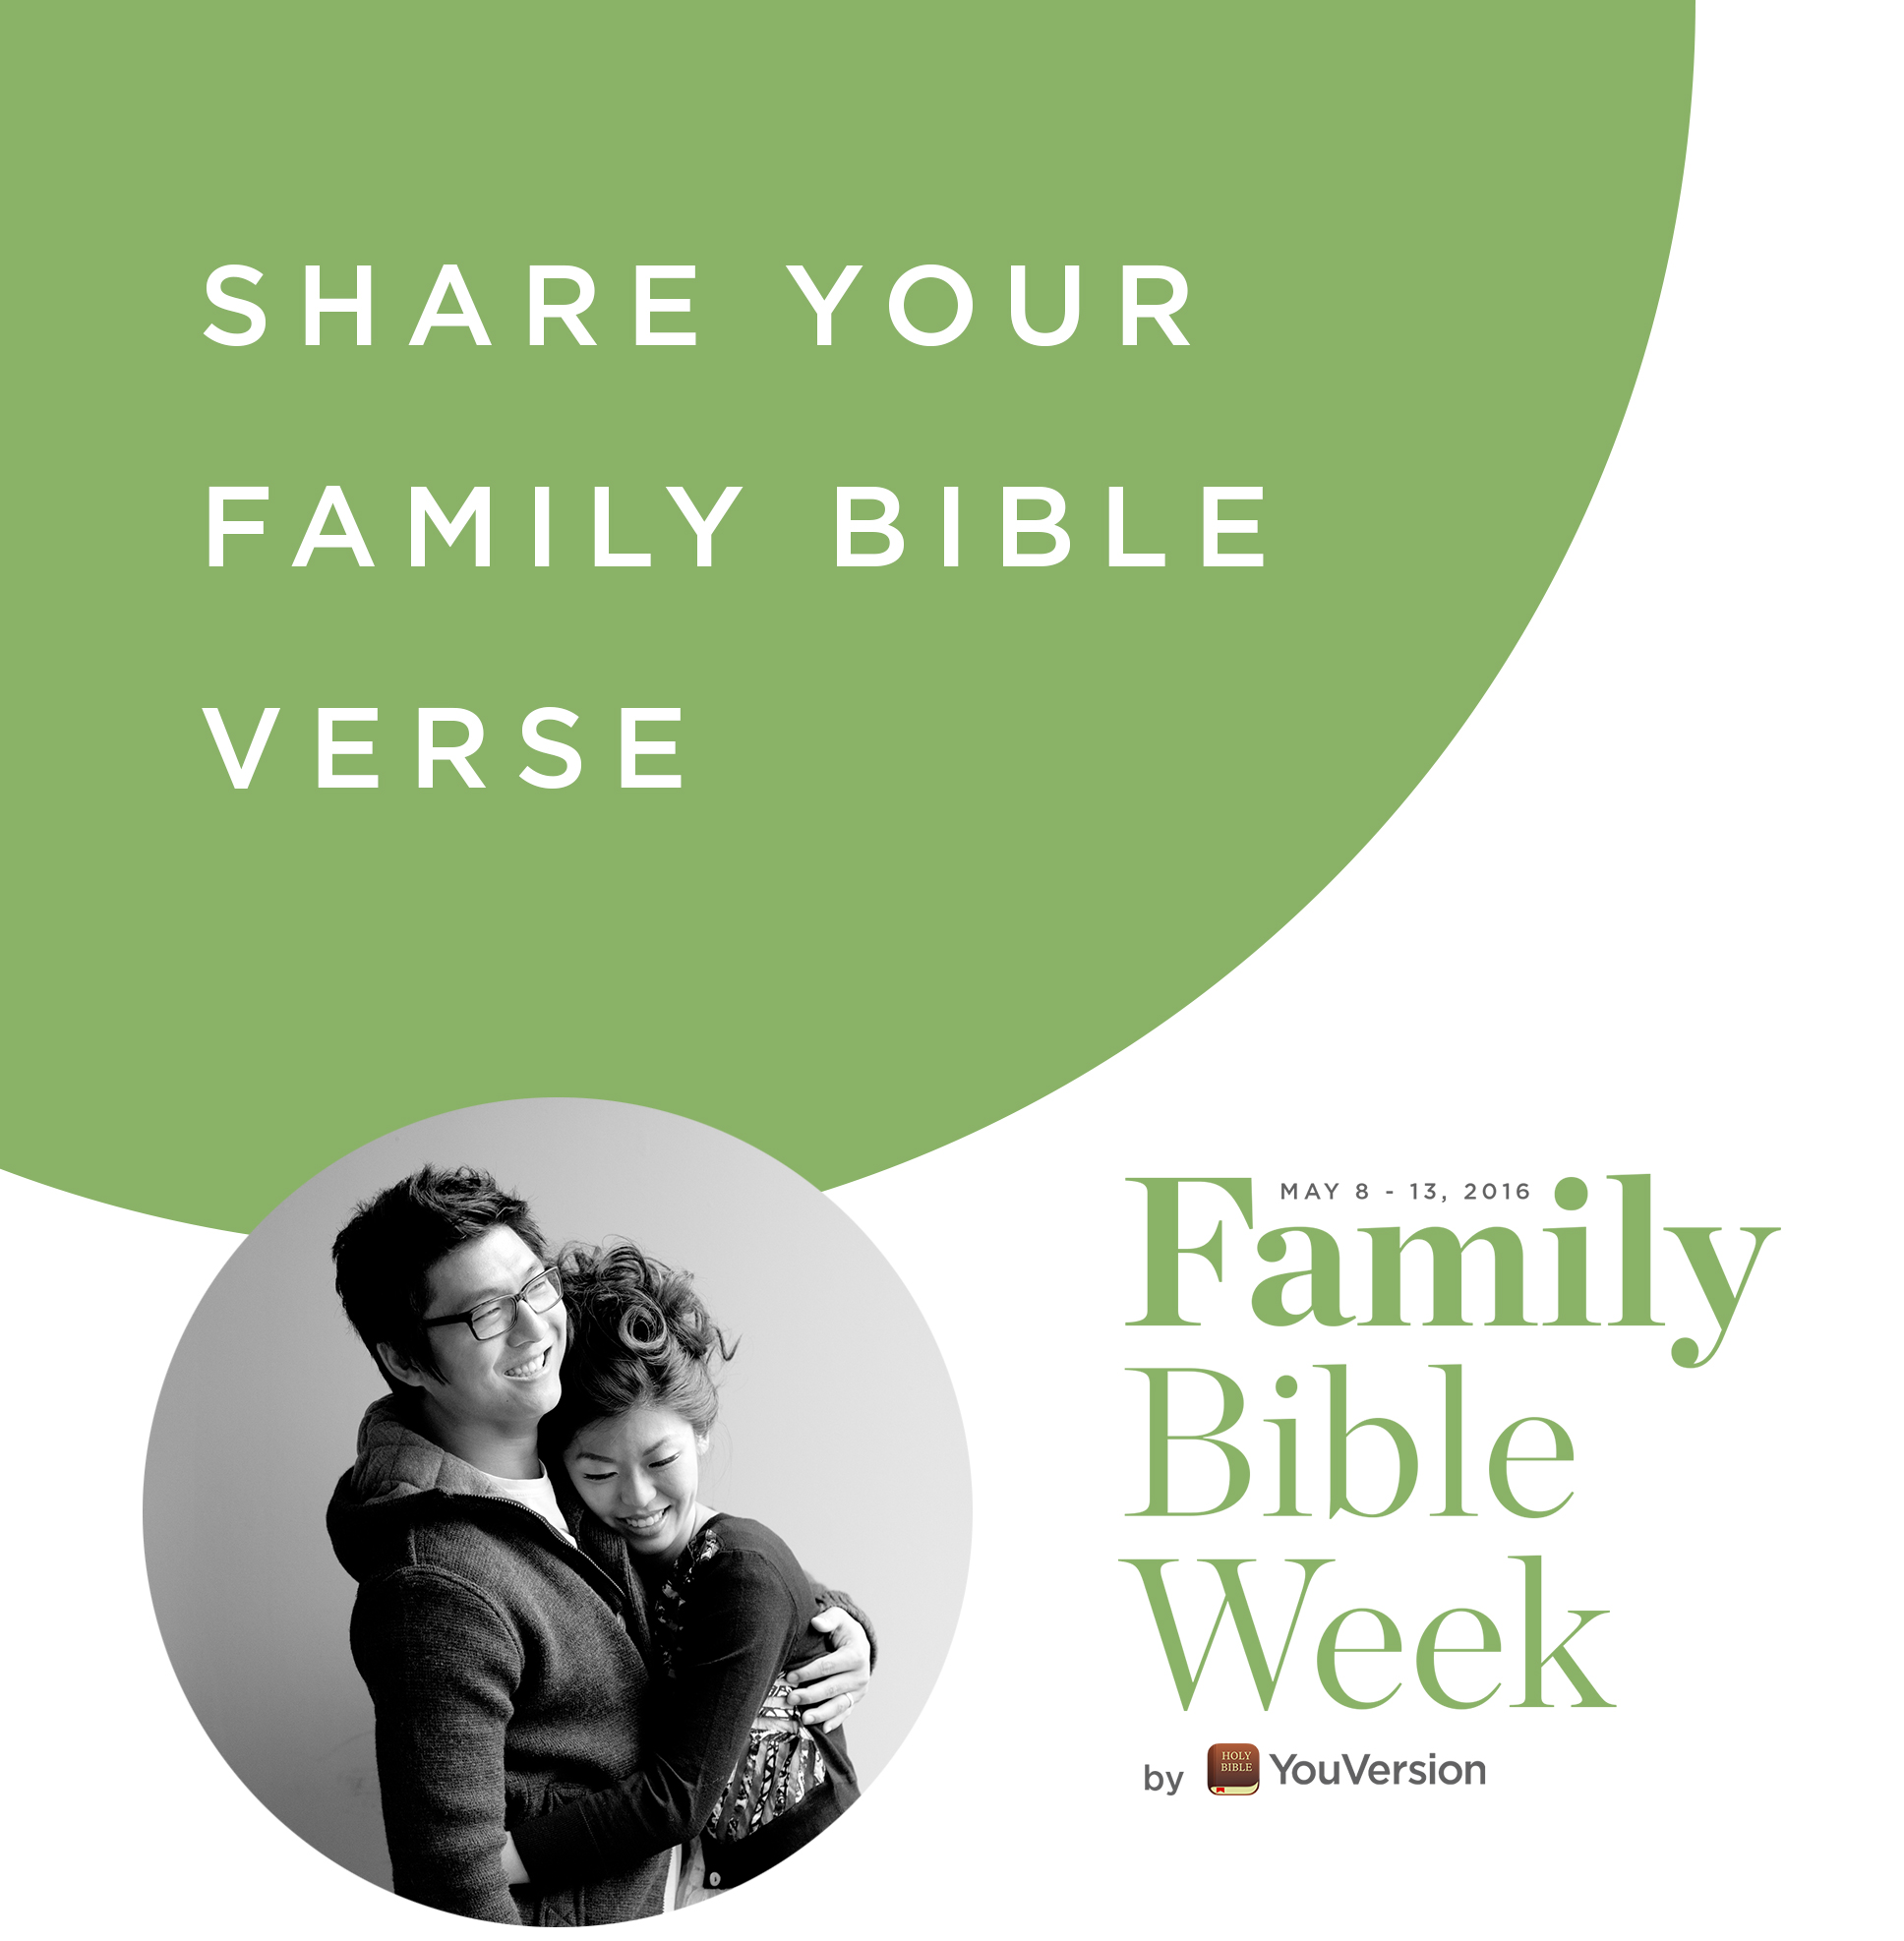 Family Bible Week: Share your family Bible verse